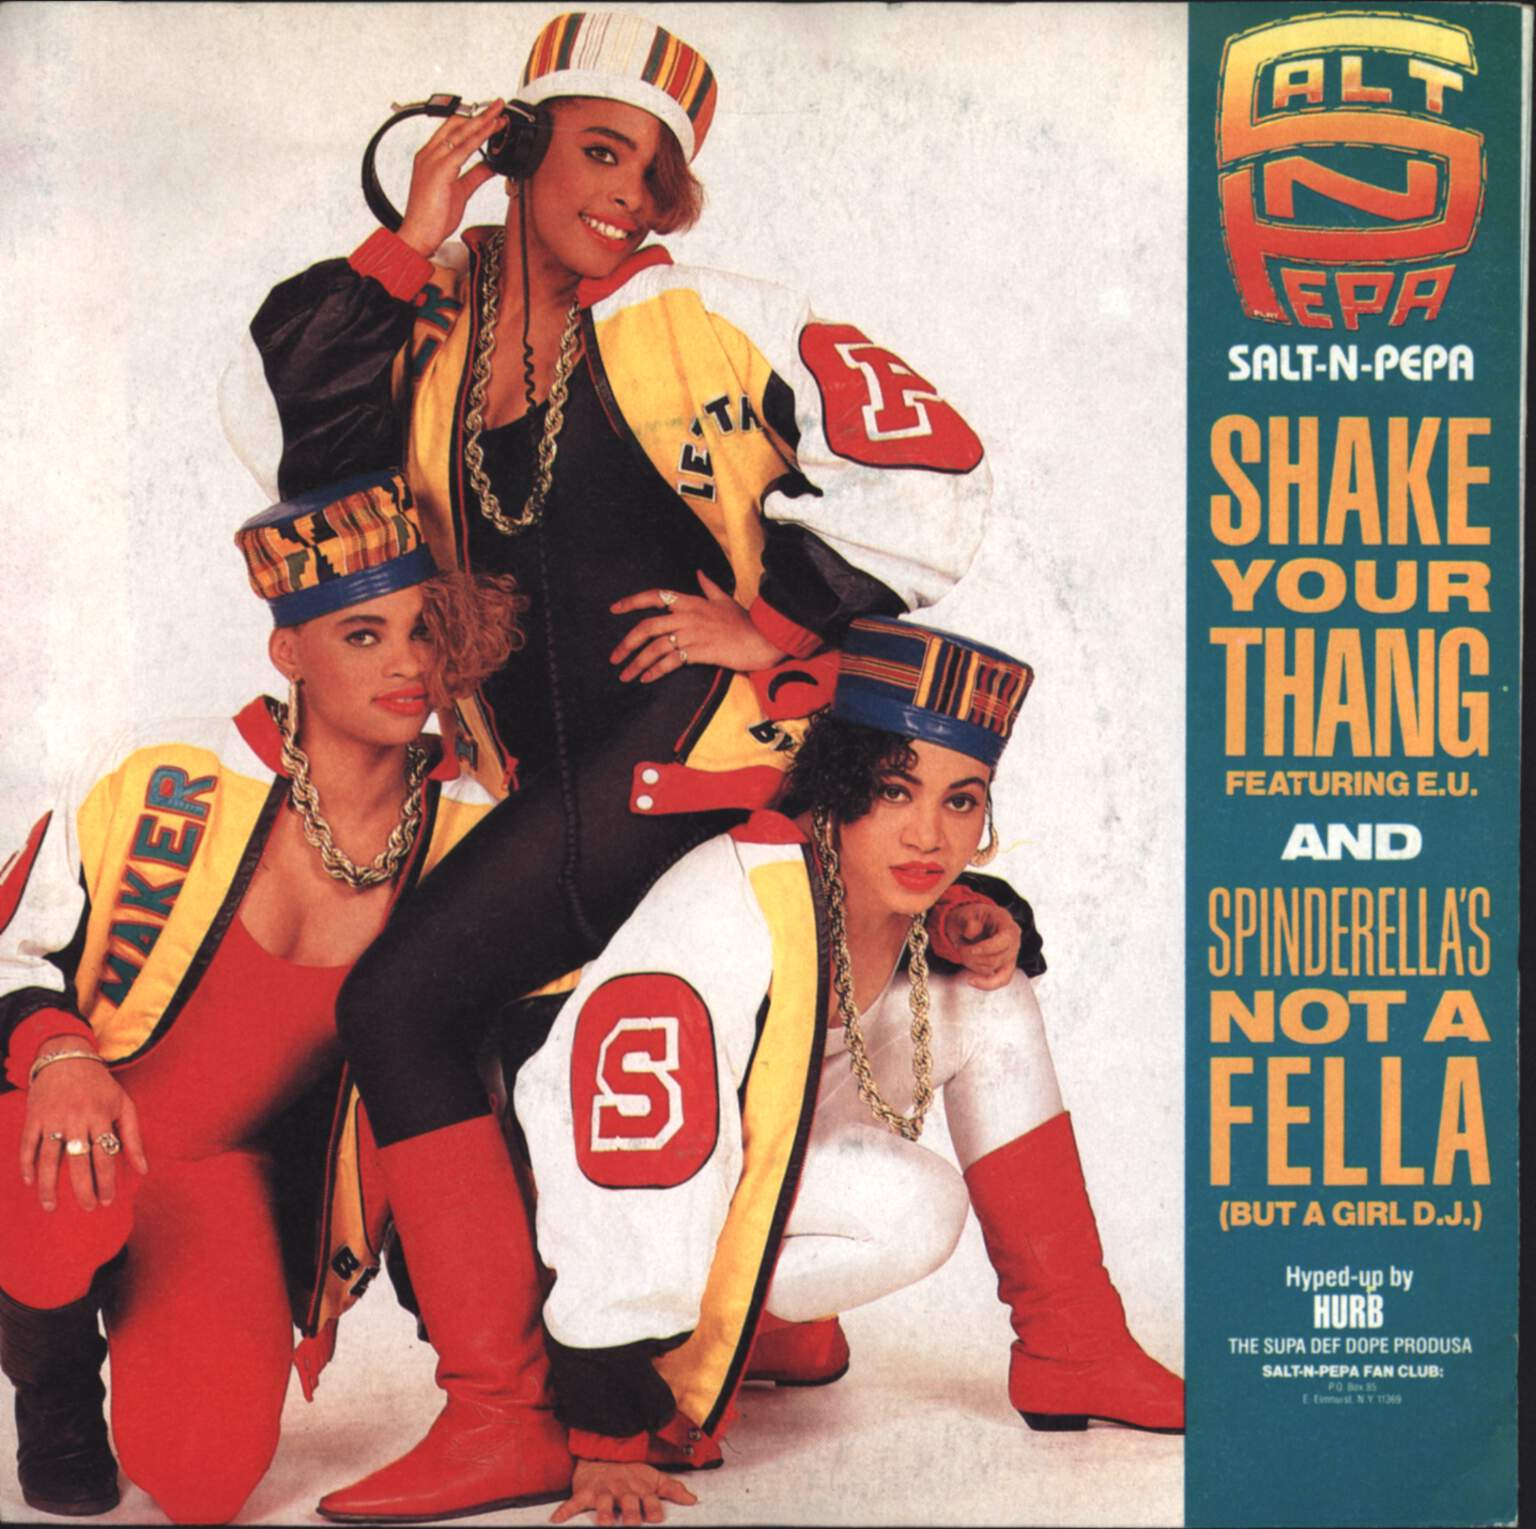 "Salt N Pepa: Shake Your Thang / Spinderella's Not A Fella (But A Girl D.J.), 7"" Single (Vinyl)"